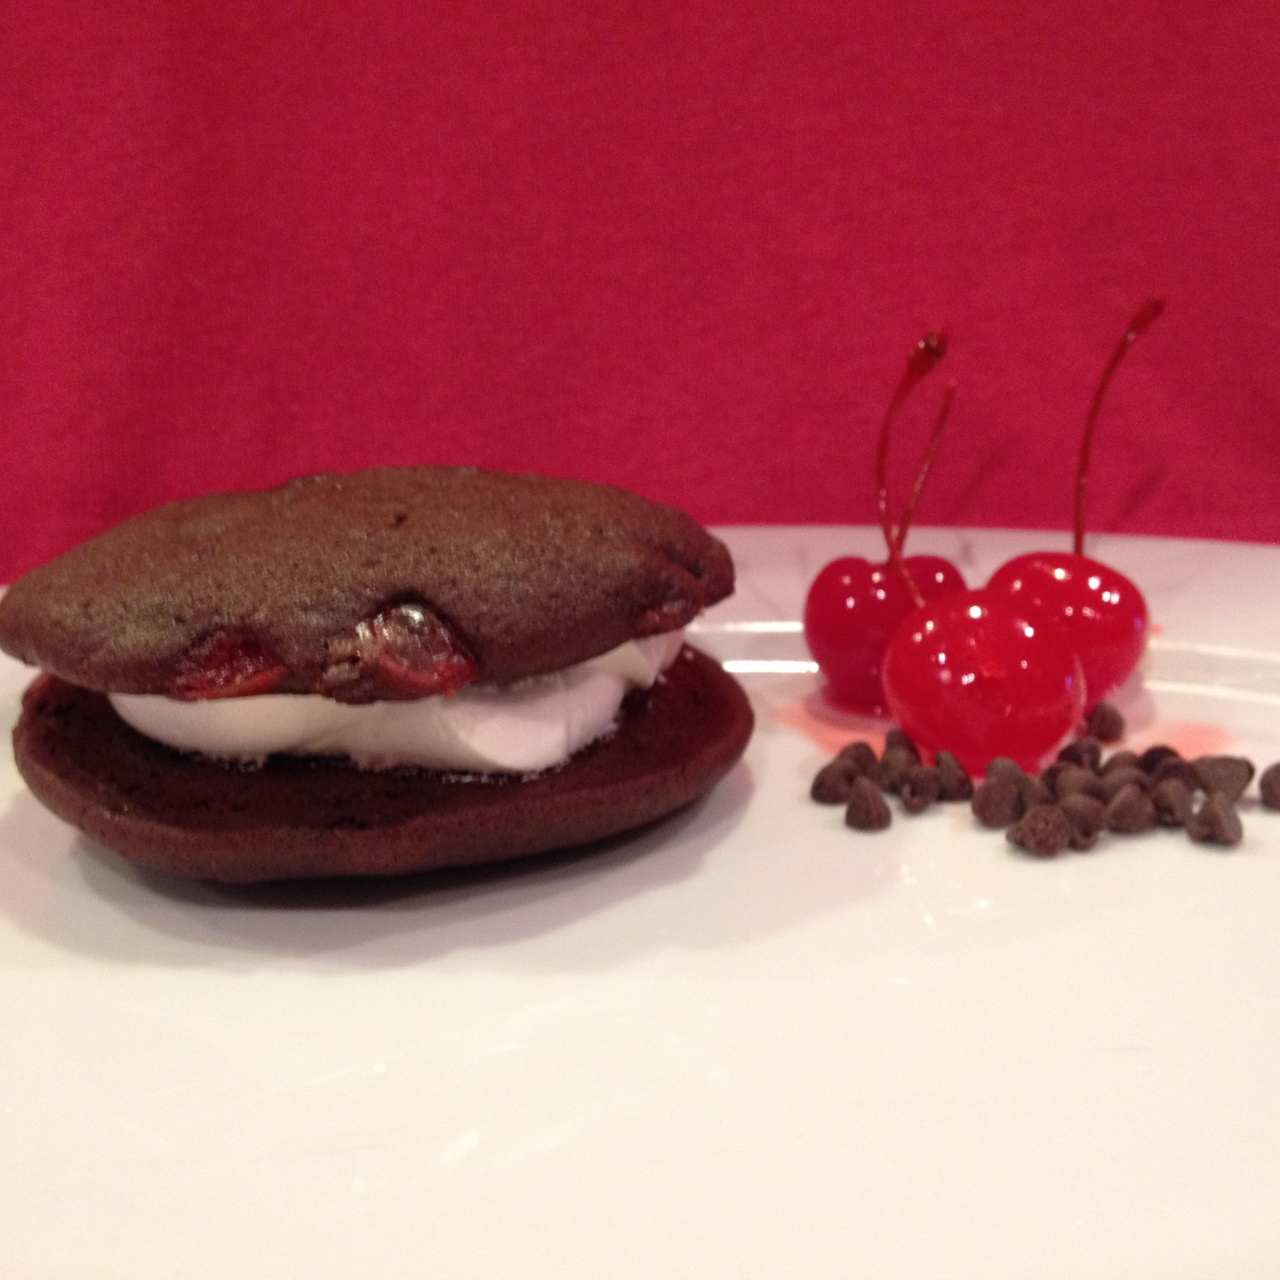 12 Pack- Medium Chocolate Cherry Whoopie Pies (Birthday Party Size)